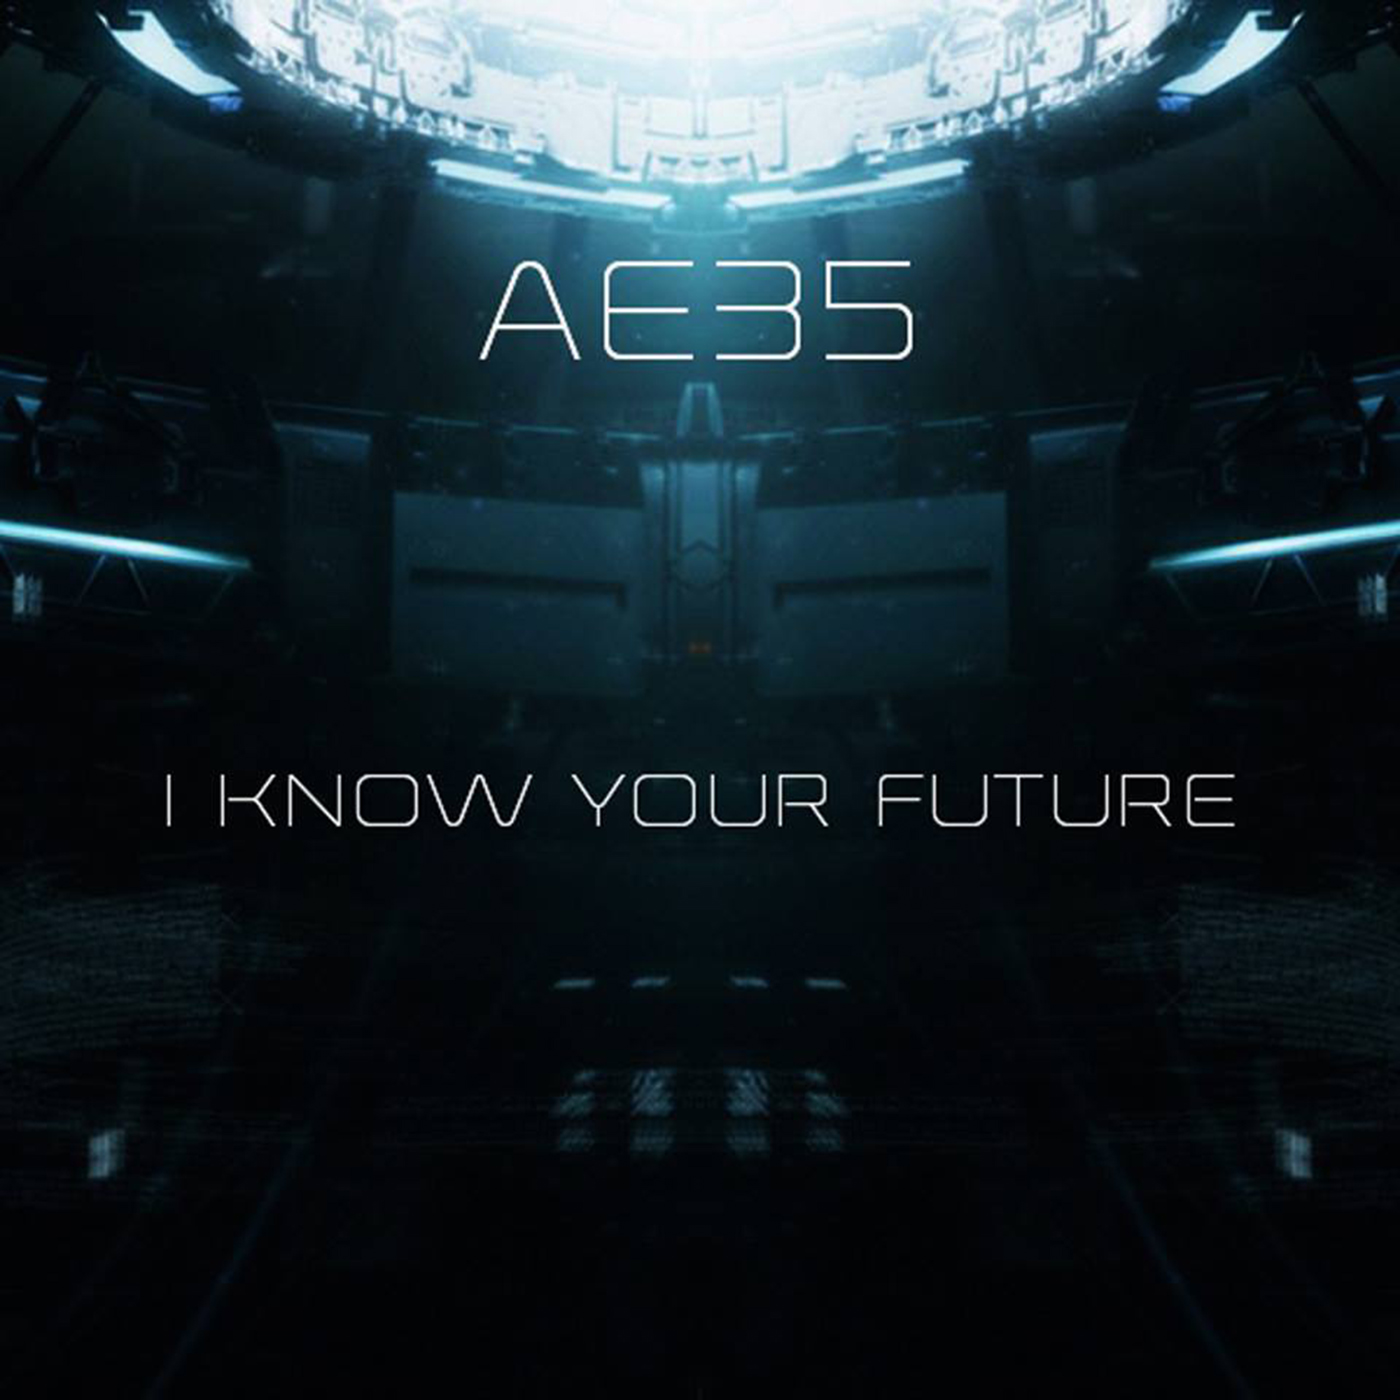 AE35 / I Know Your Future